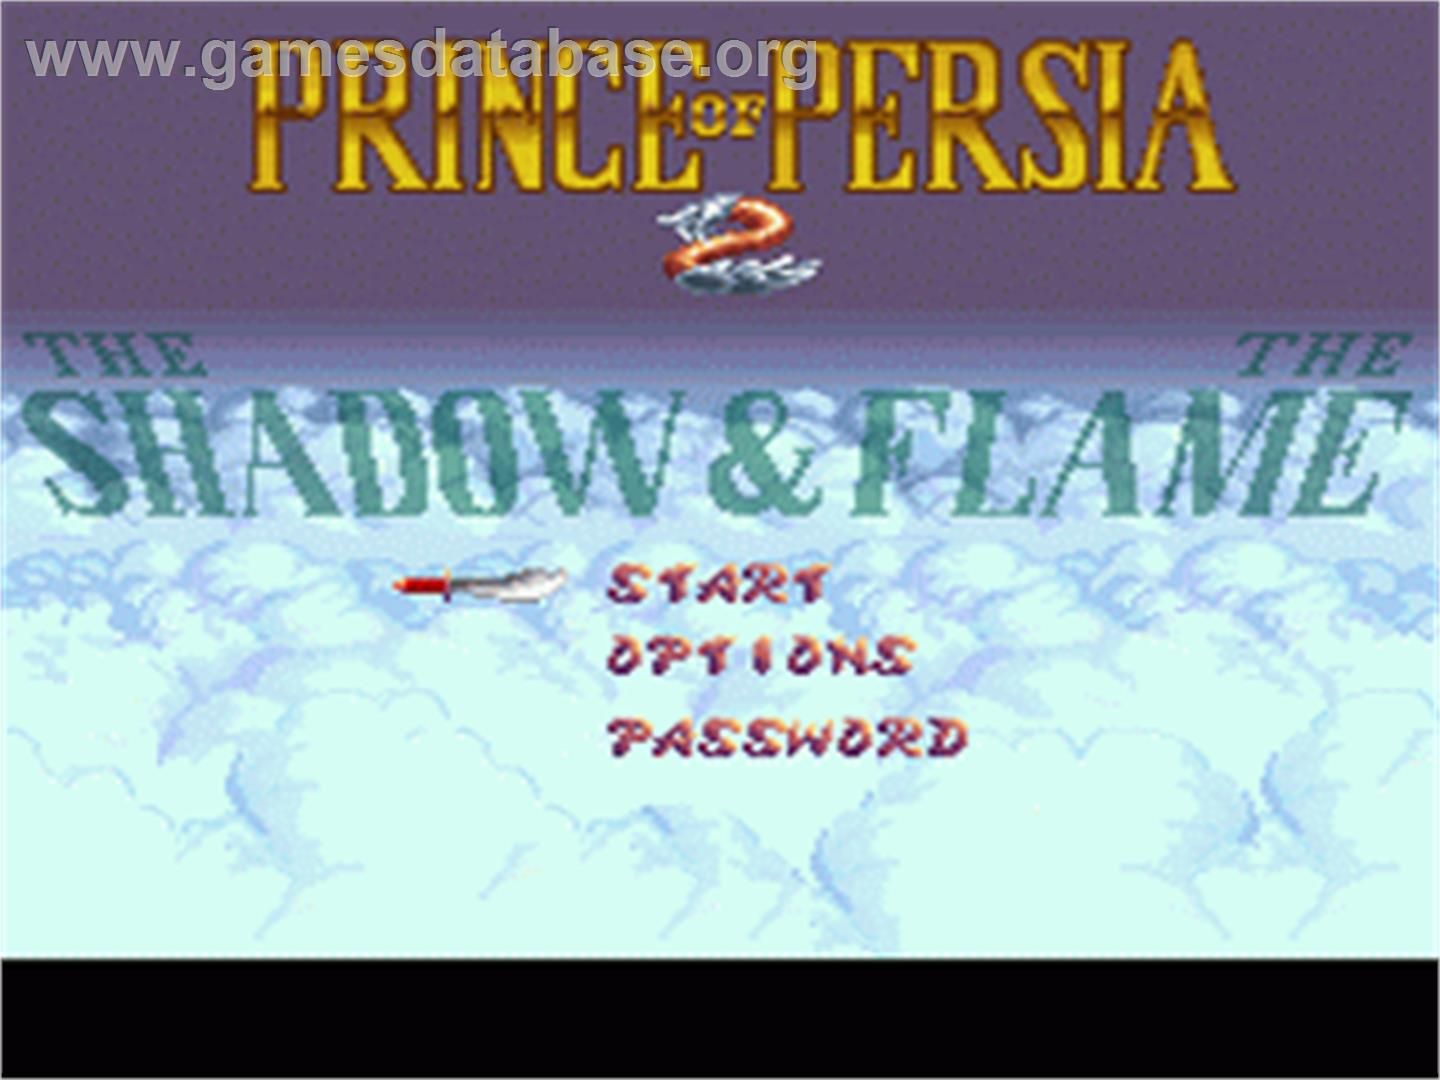 Prince of Persia 2: The Shadow & The Flame - Nintendo SNES - Artwork - Title Screen